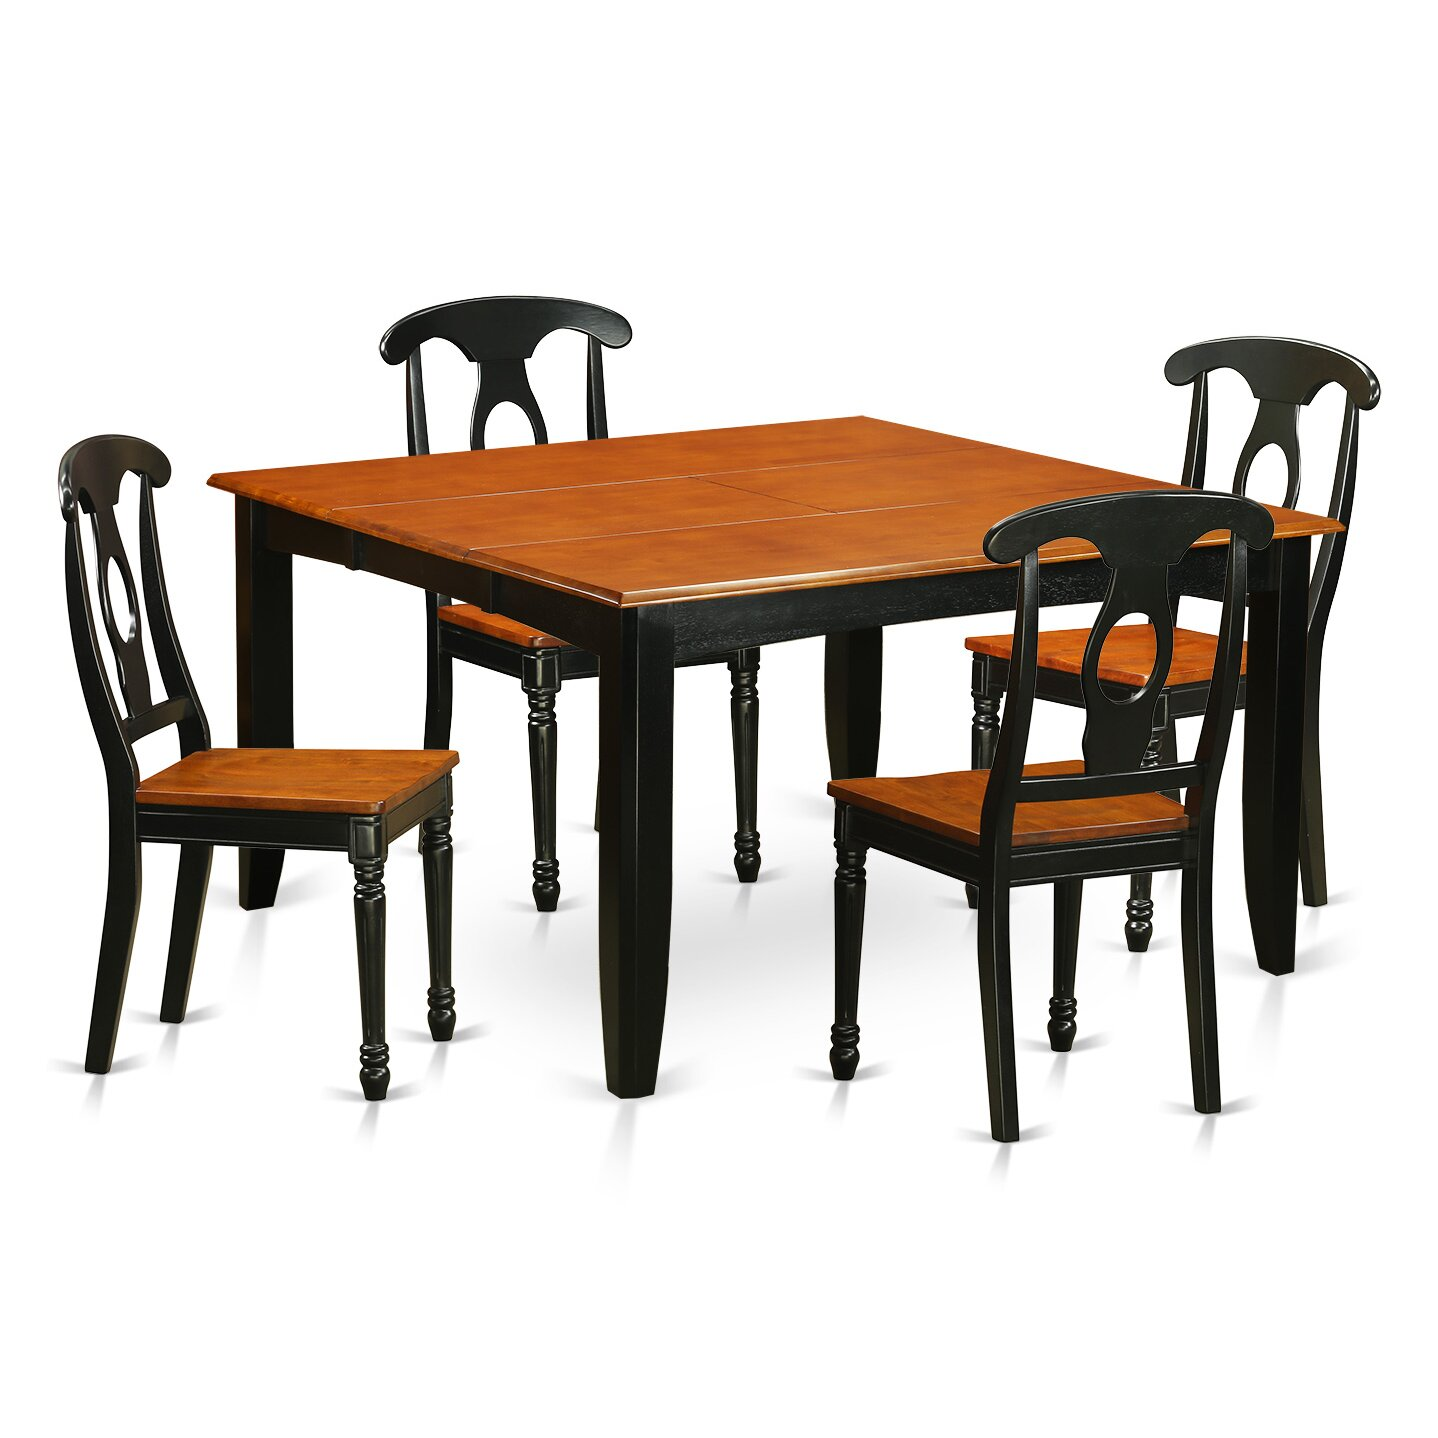 East west parfait 5 piece dining set reviews wayfair for 5 piece dining room set with bench